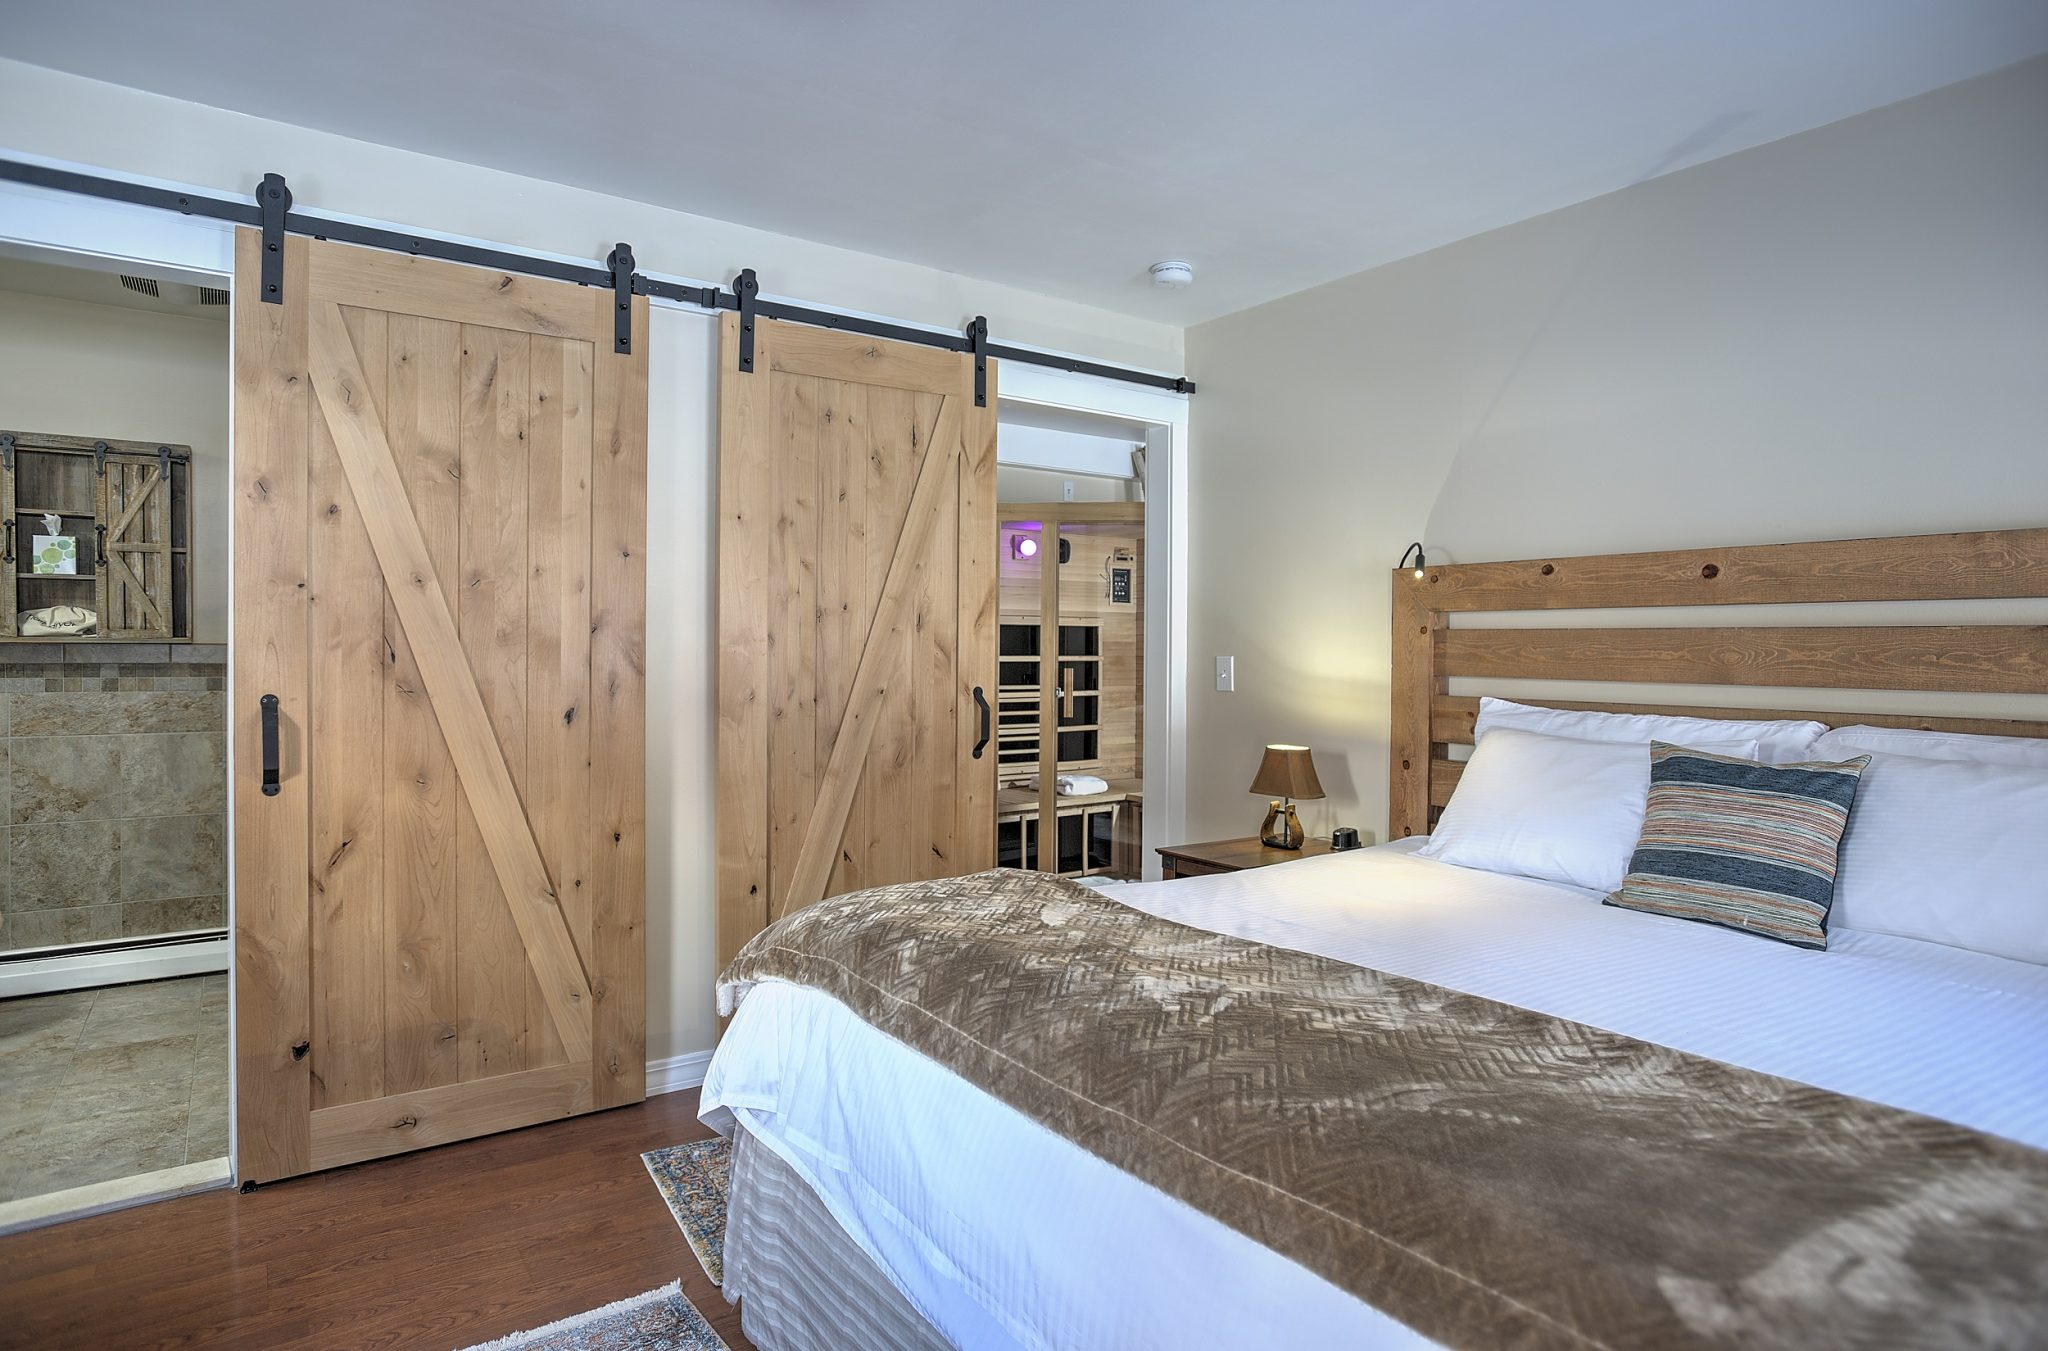 large bed and barn doors